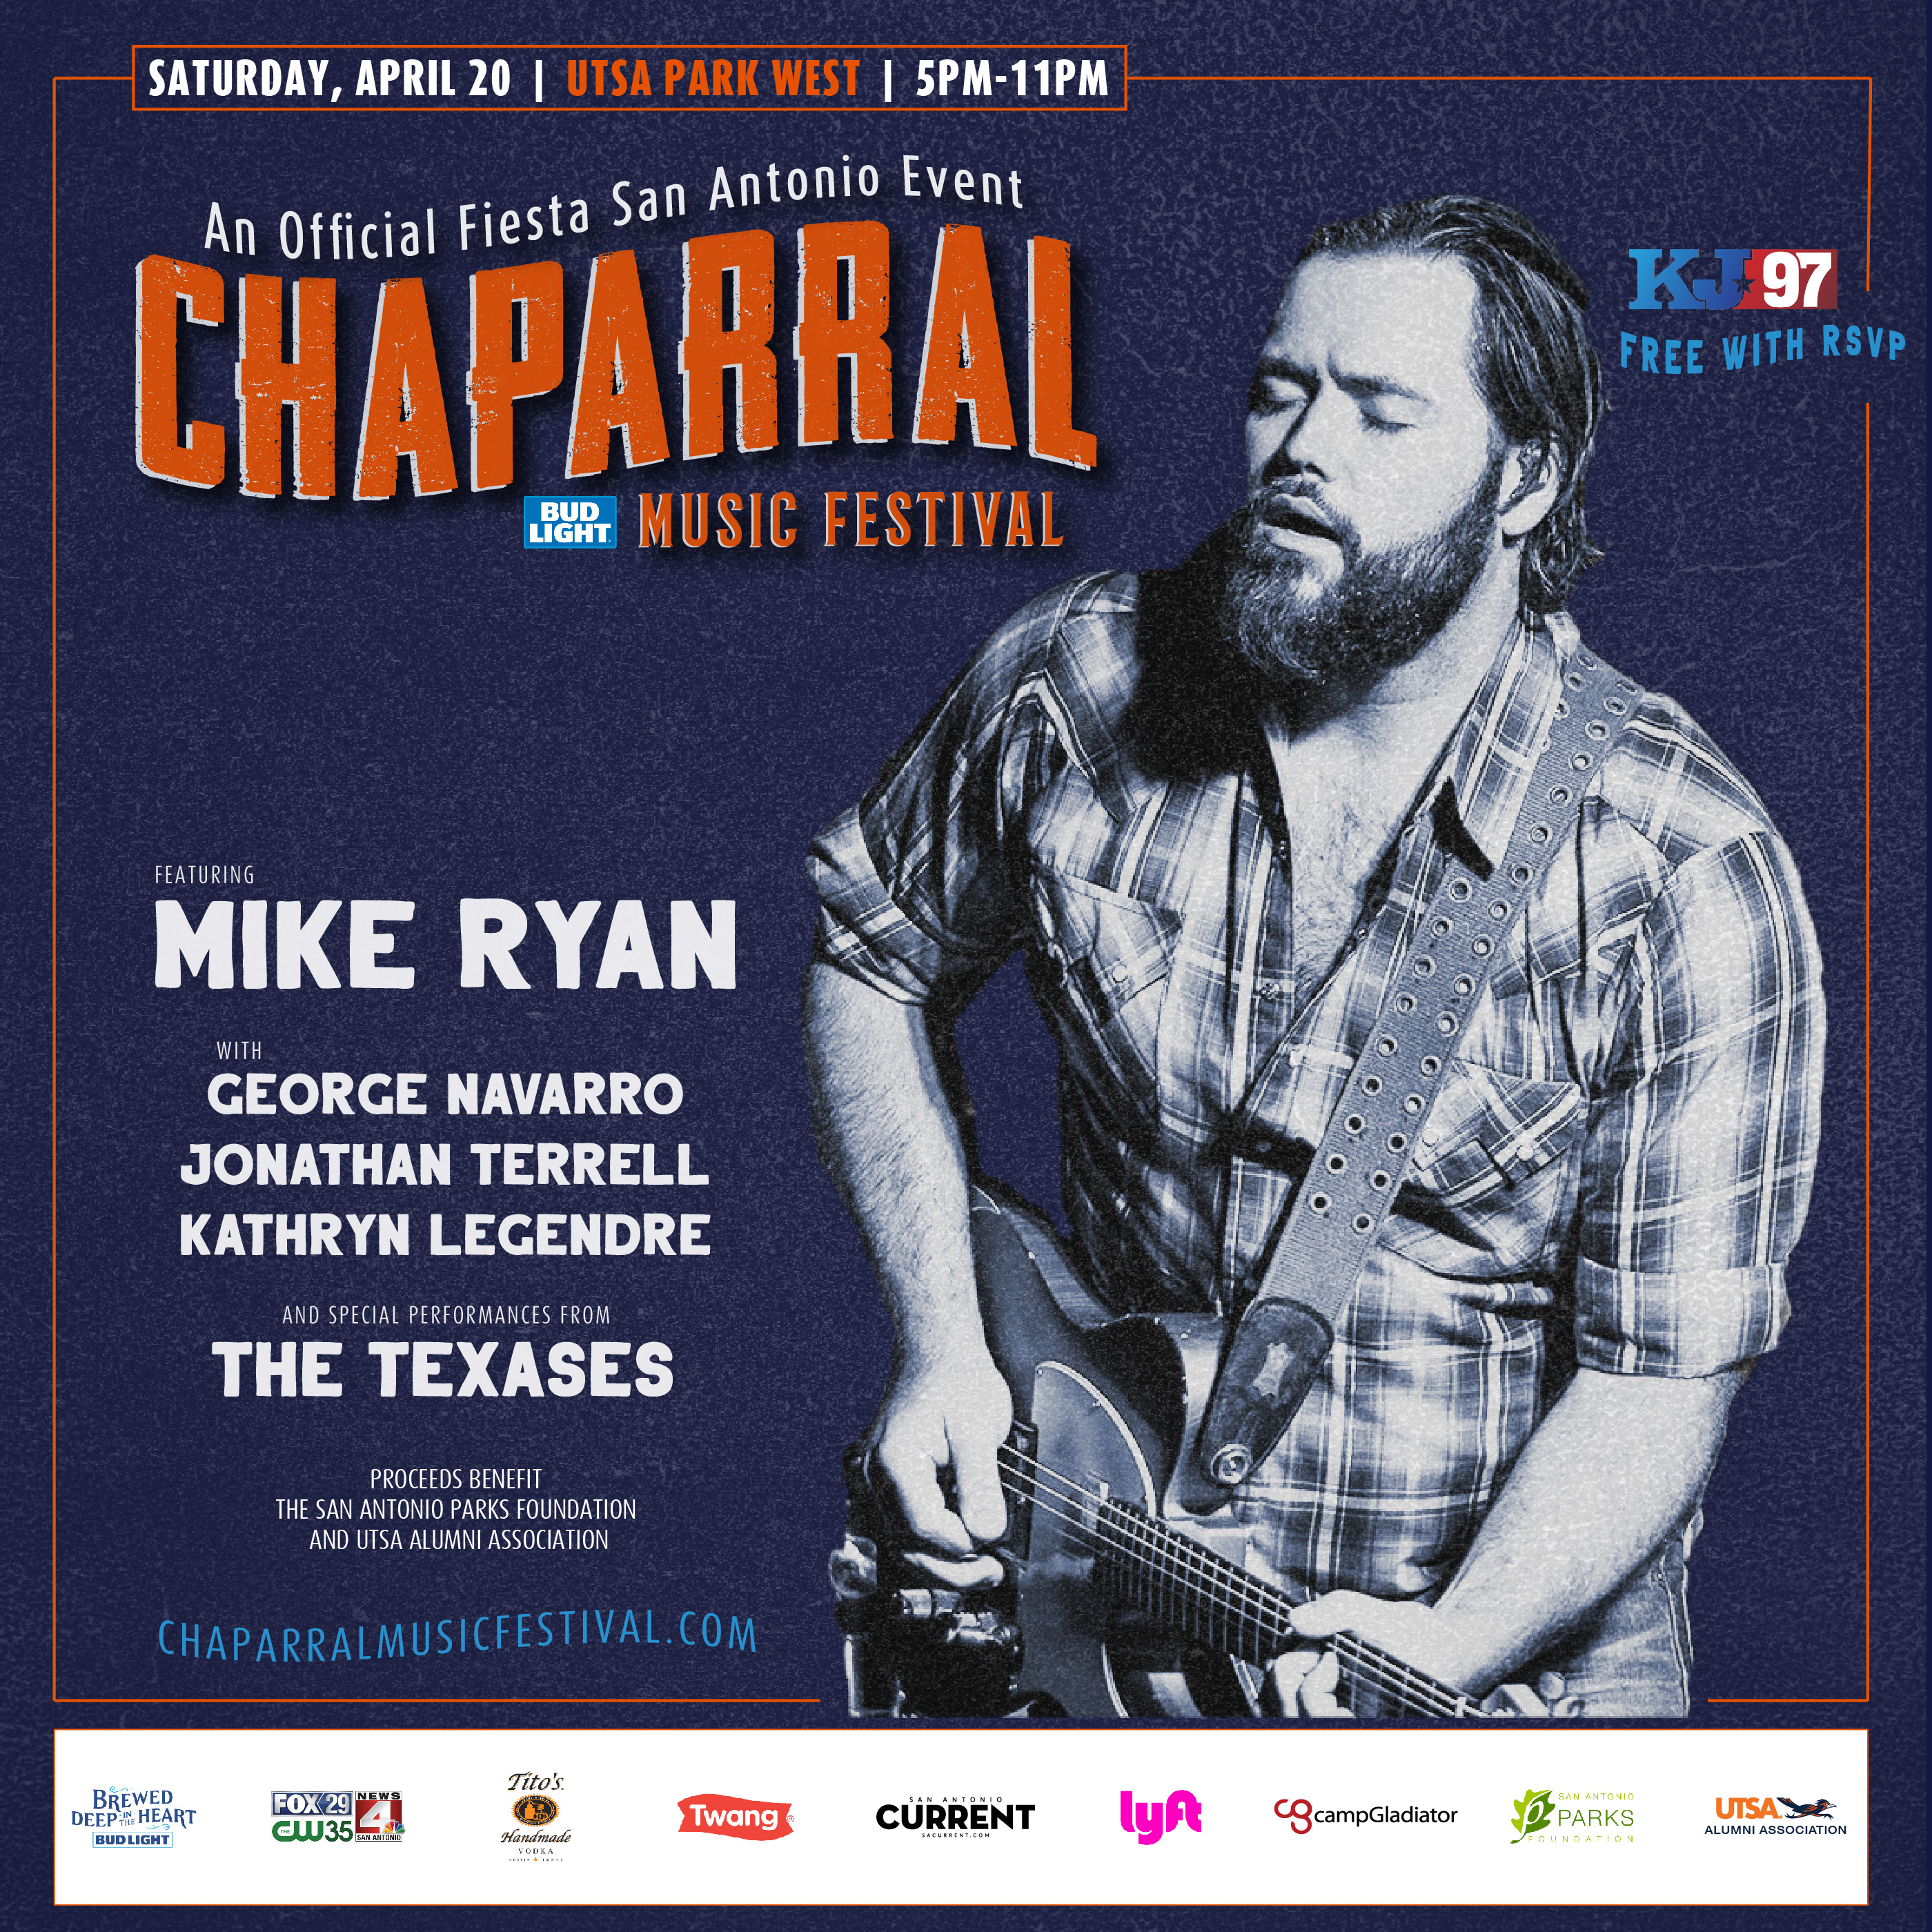 Chaparral Music Festival - San Antonio Parks Foundation